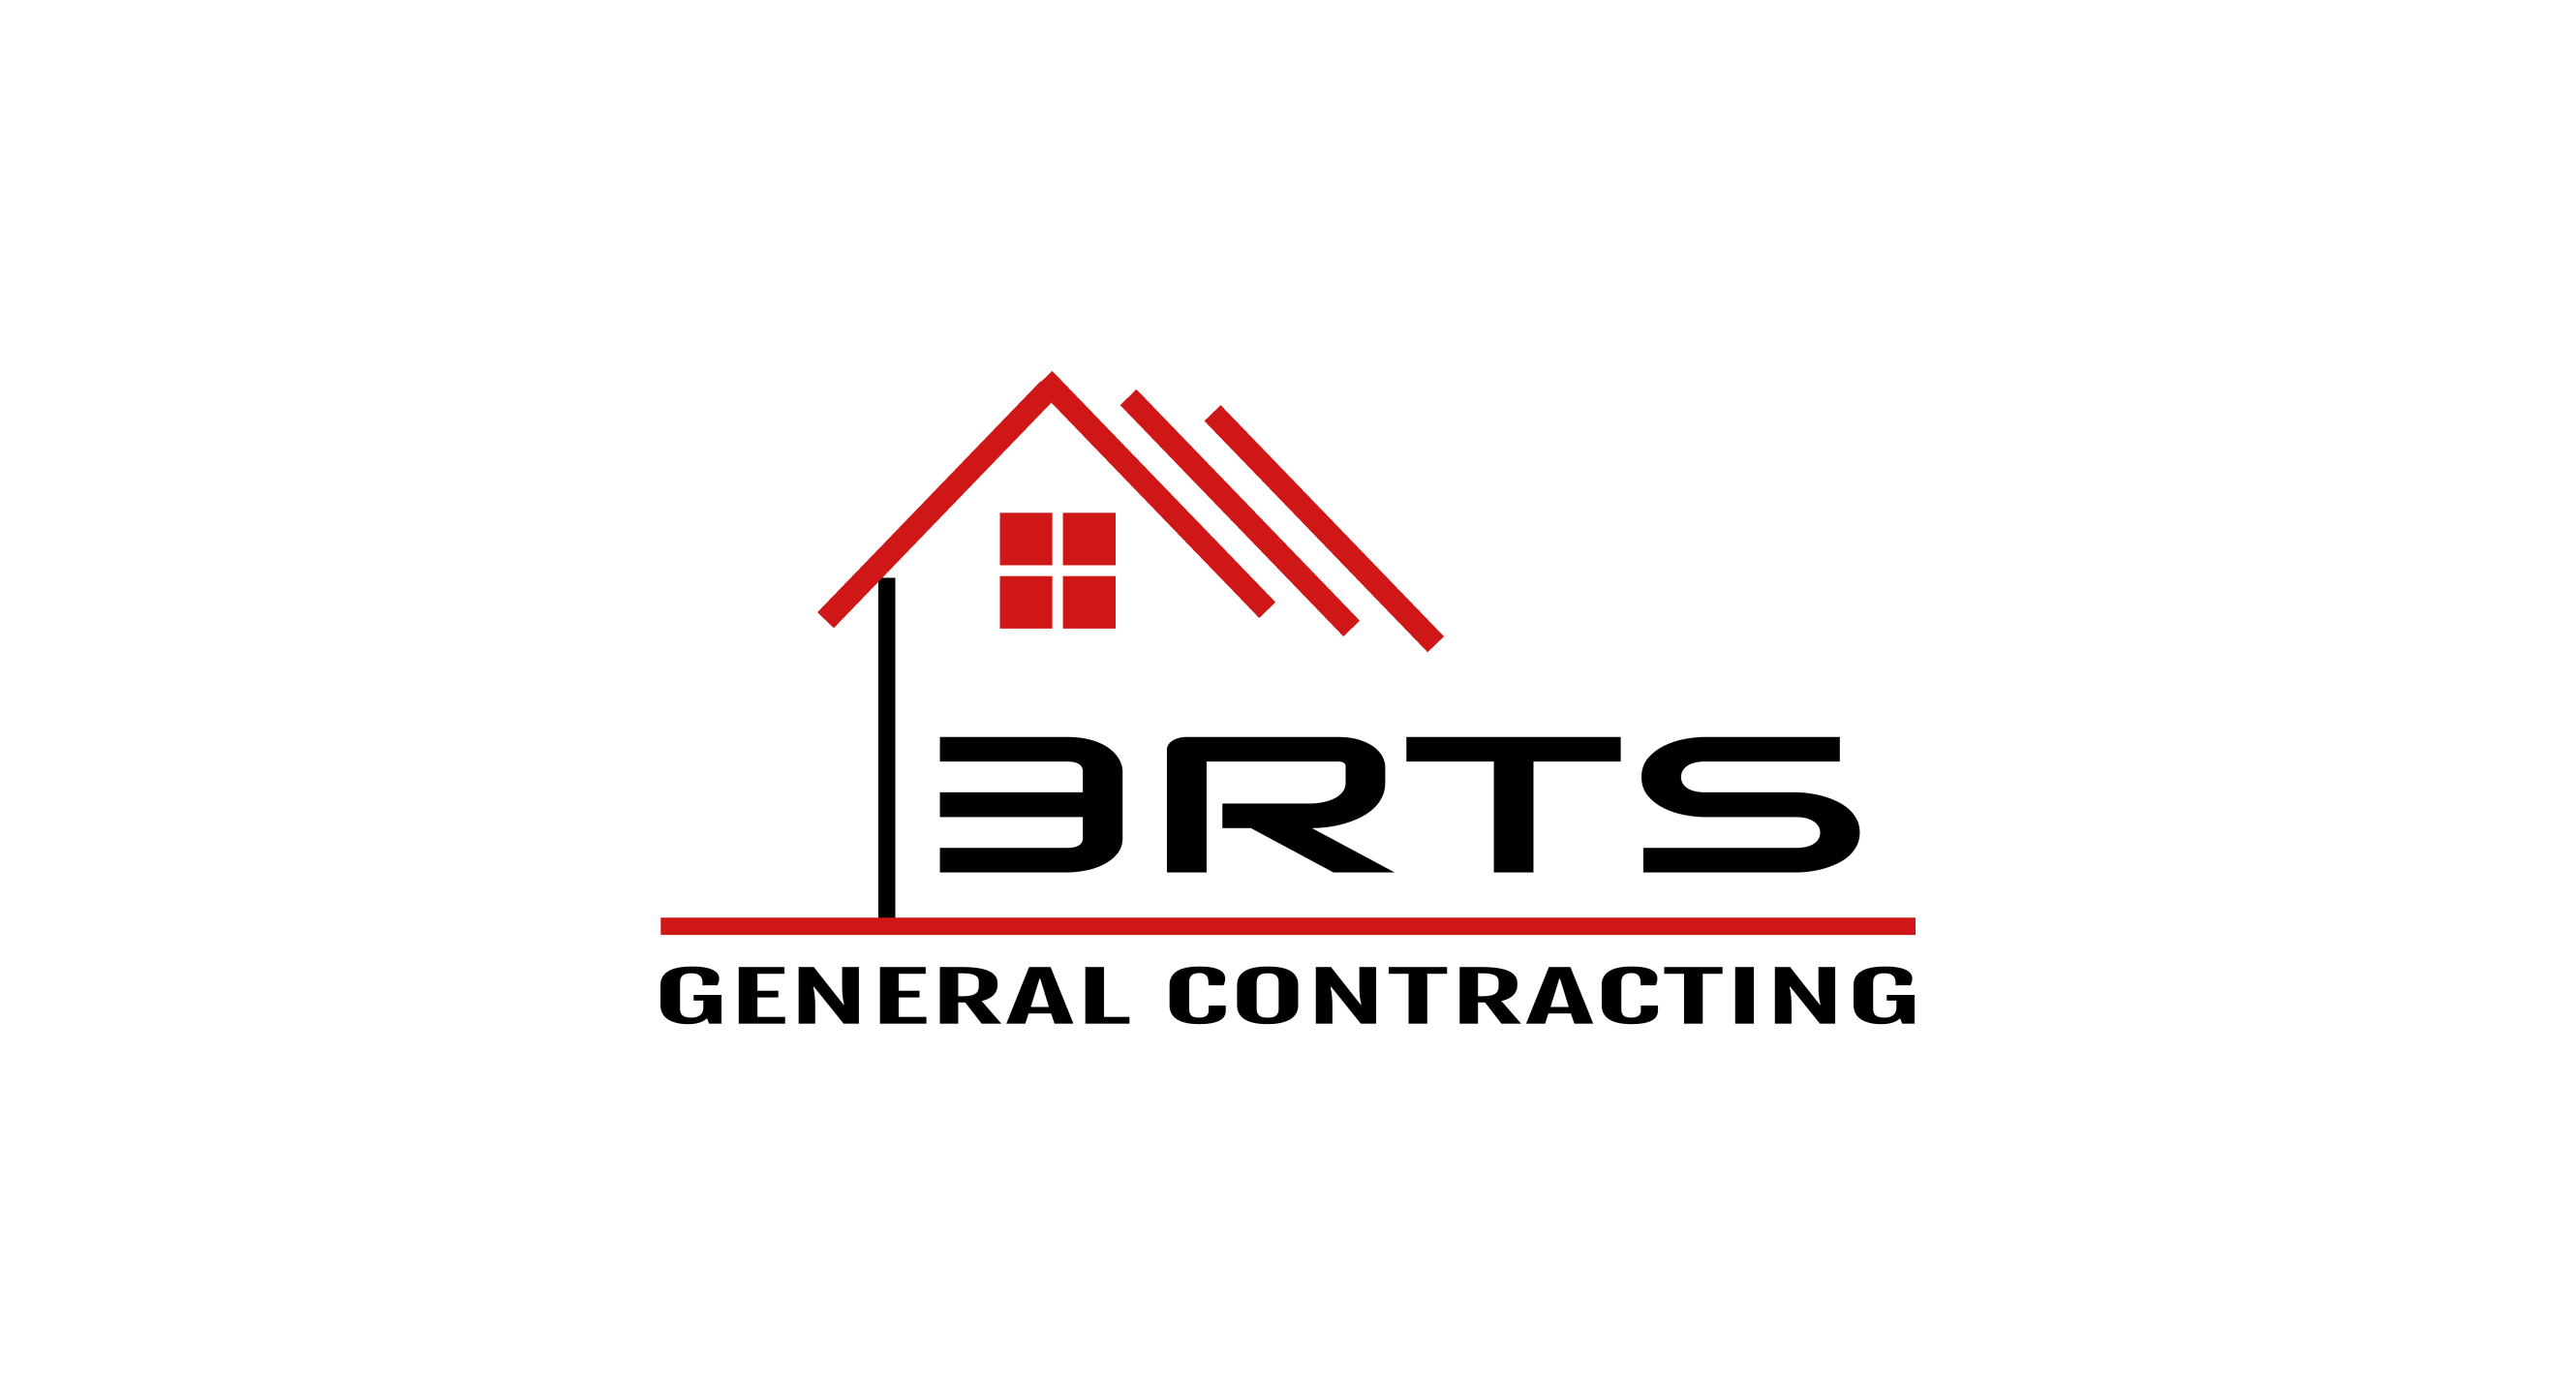 Denesidis Director of Sales & Management at 3RTS General Contracting Corp. 3RTS General Contracting Corp.